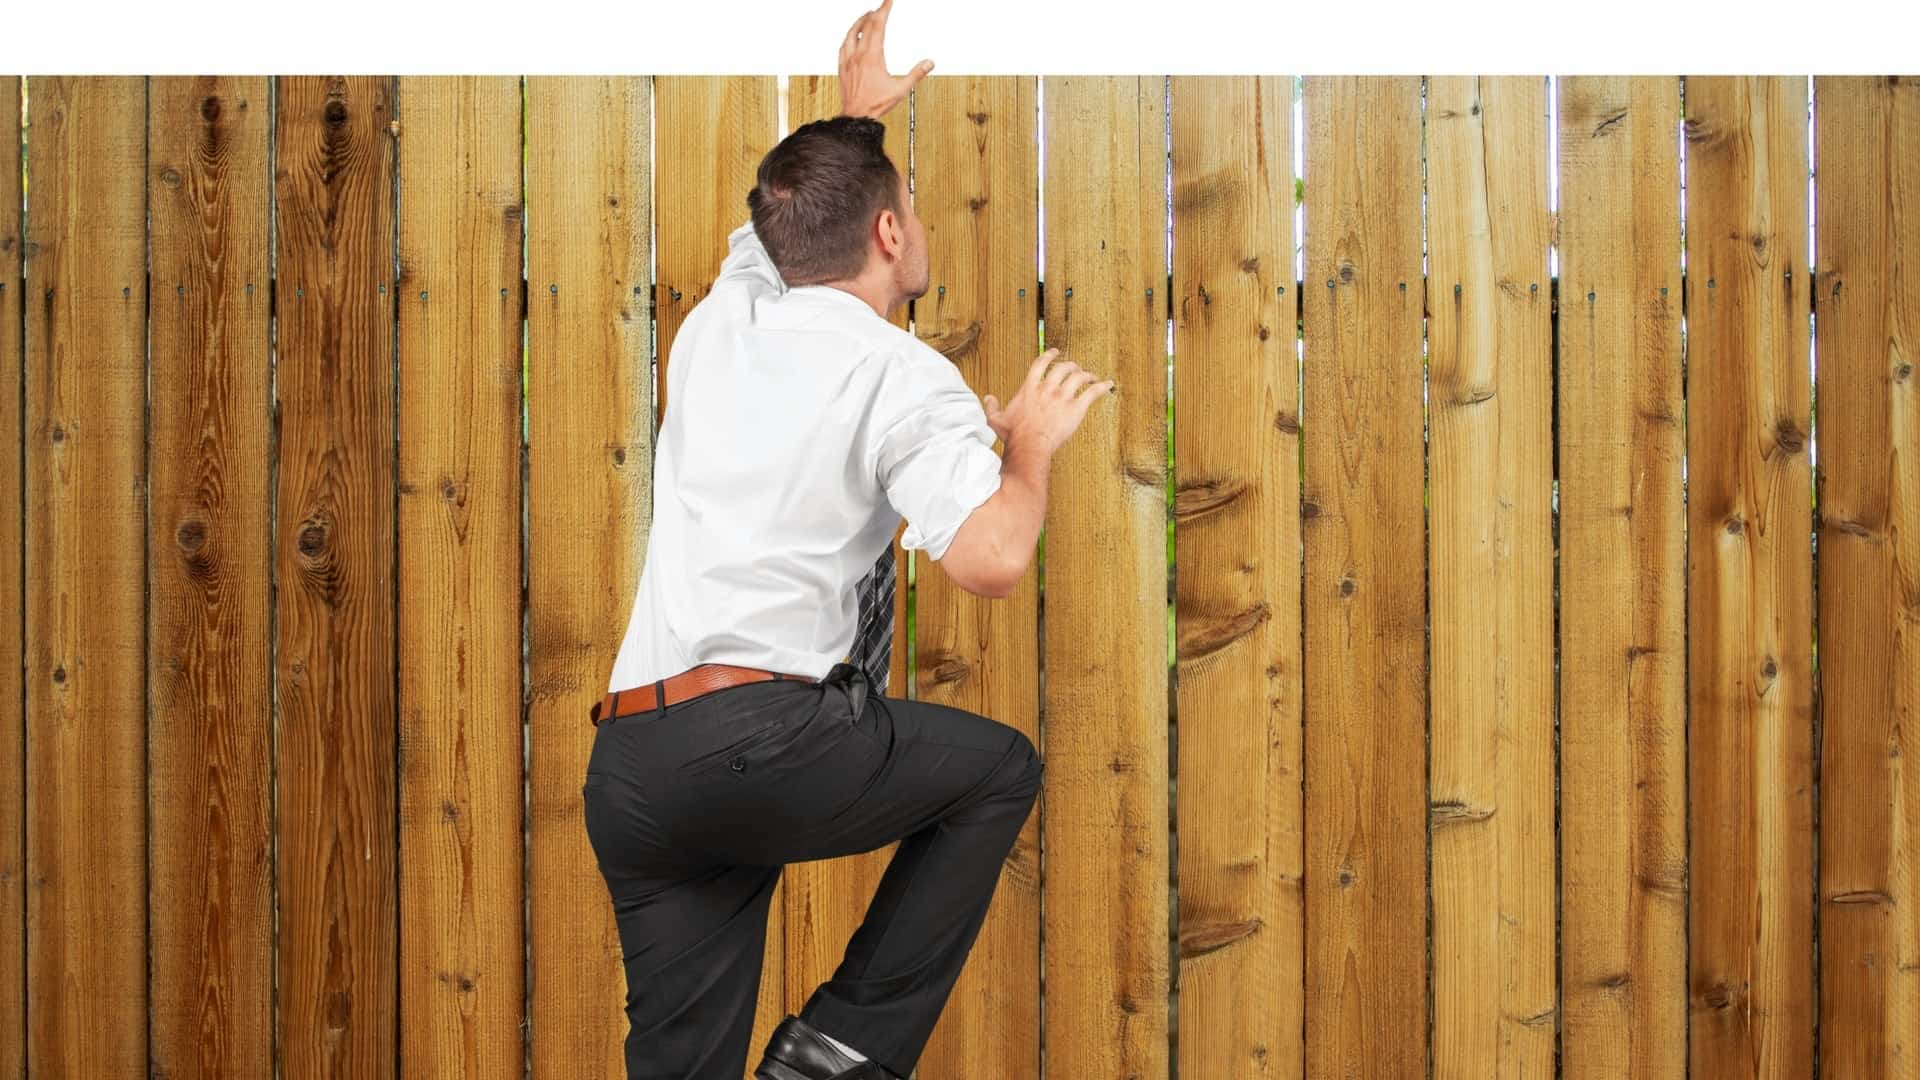 picture of a man climbing a fence